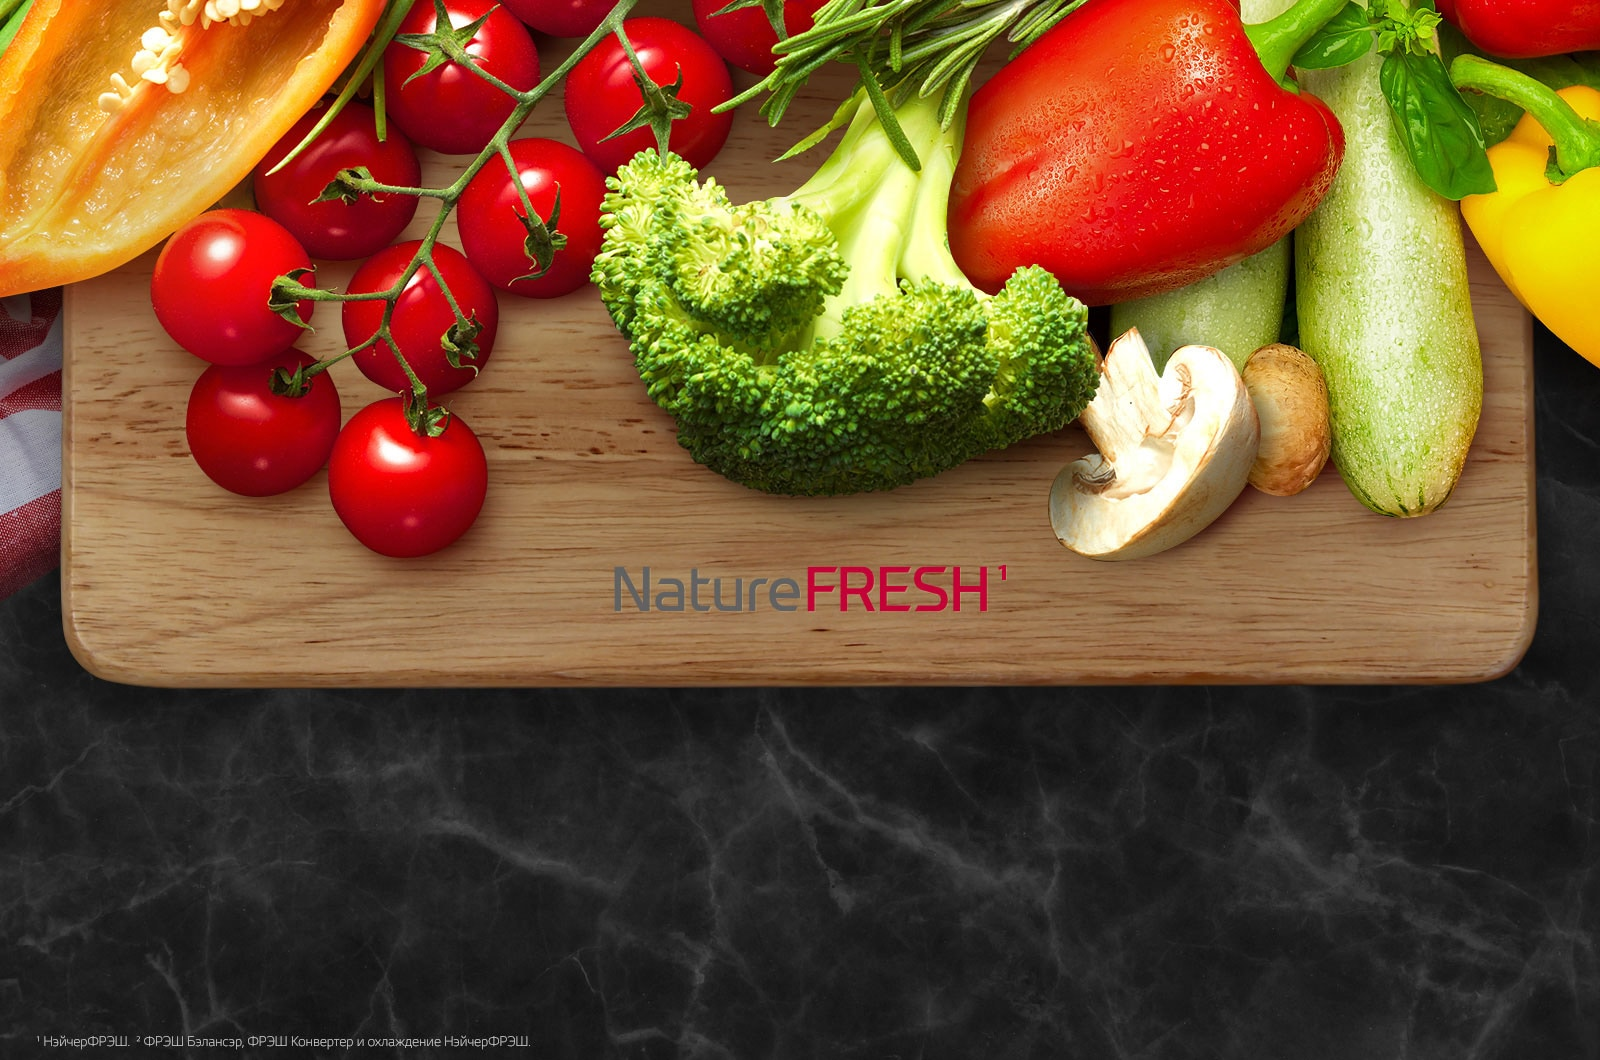 M01_NatureFRESH_Global-Pollux_D_01